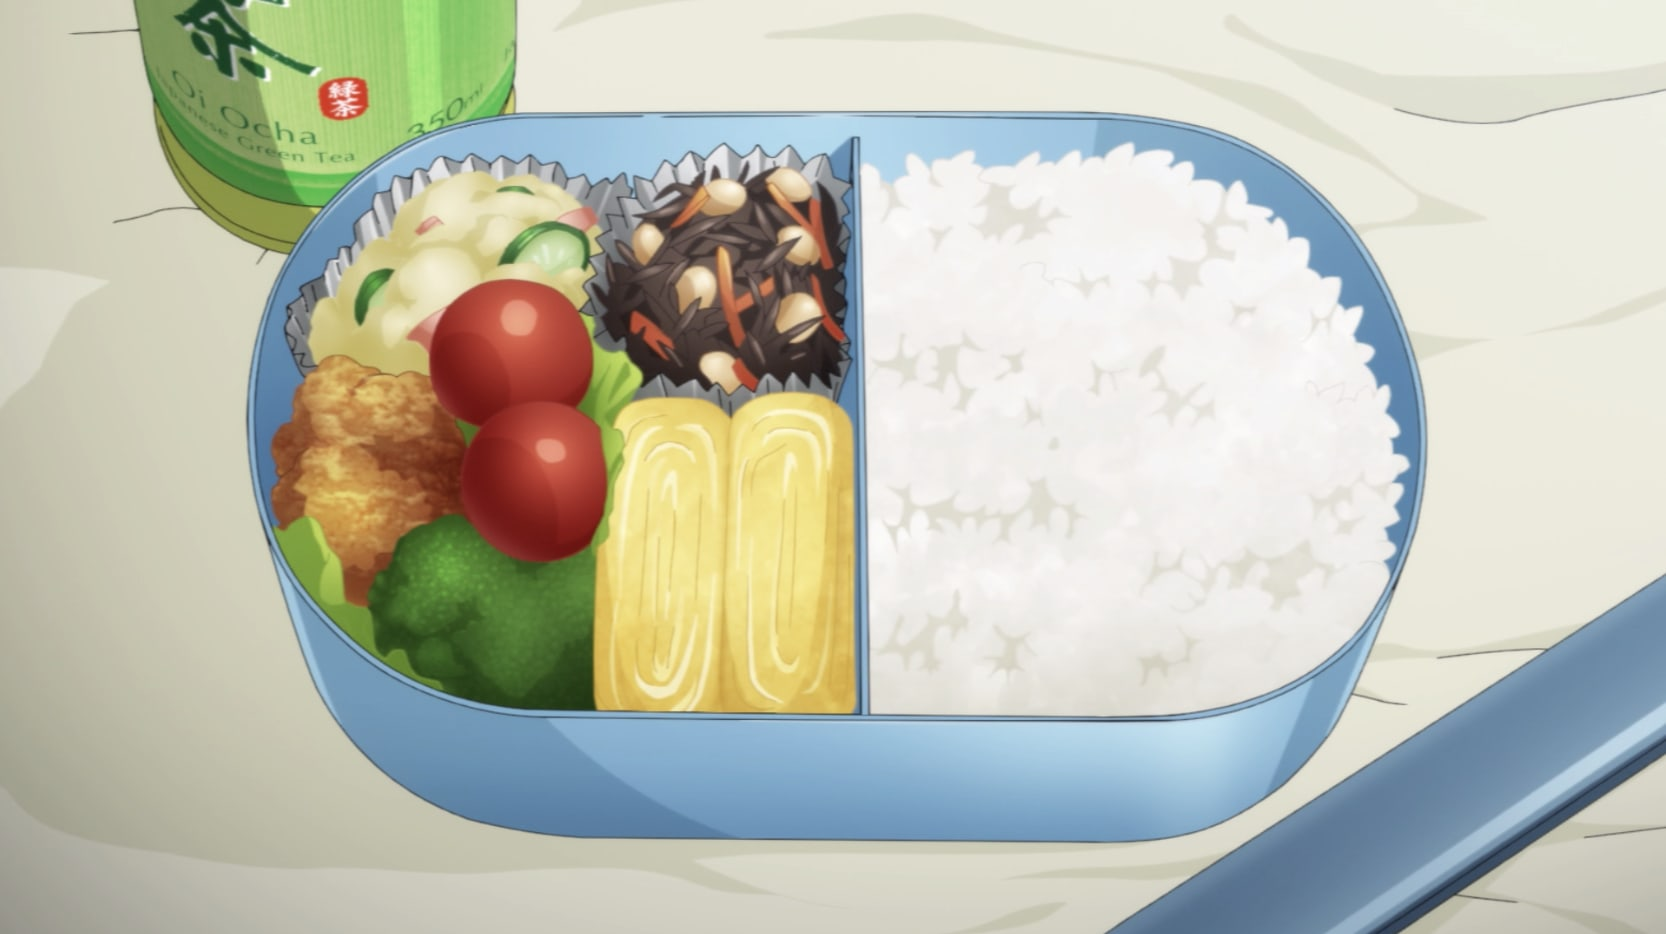 A bento; this one is filled with rice, an omelette, a salad and some other sides